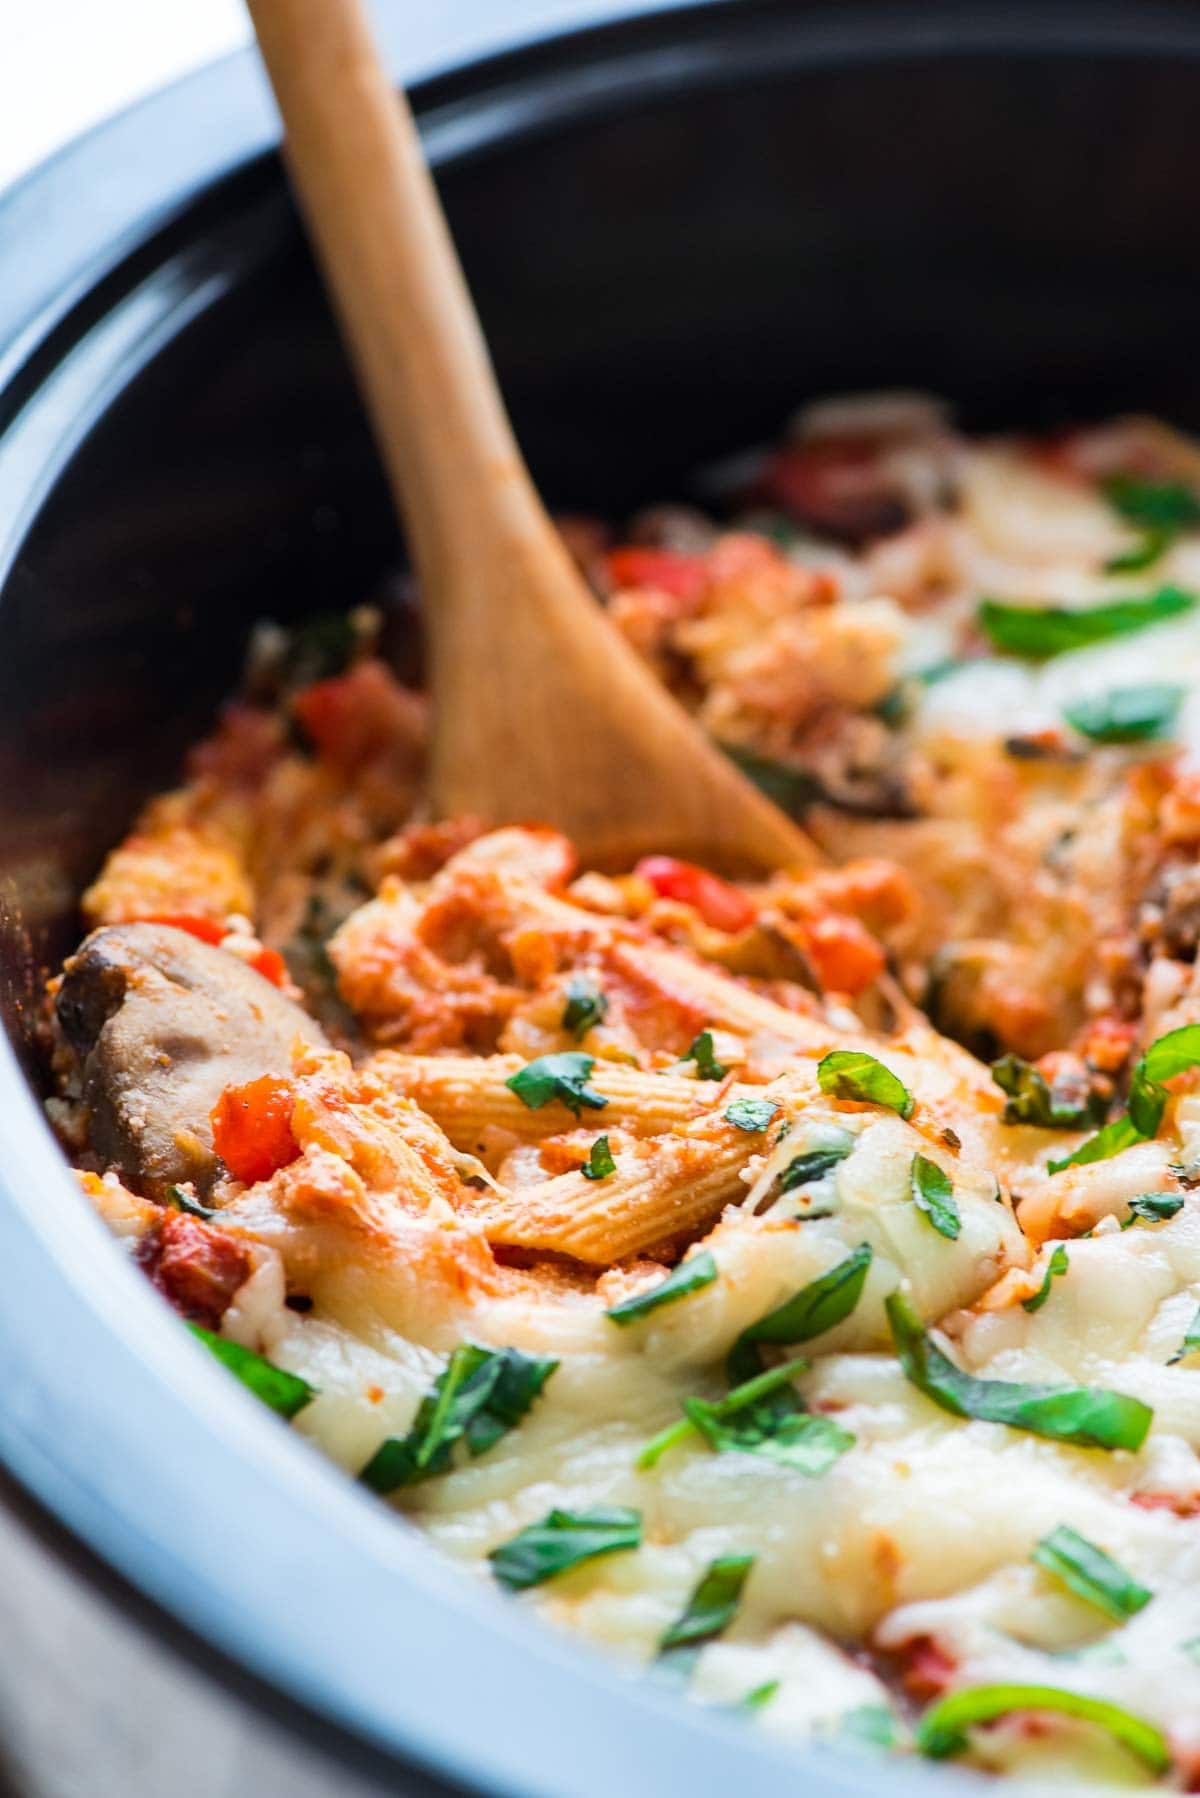 Crock Pot Pasta — the perfect dinner for a busy night! Easy, healthy, and the slow cooker does the work. Taste just like traditional baked penne, but is so much easier. Healthy, vegetarian recipe that our whole family loved. Recipe at wellplated.com | @wellplated